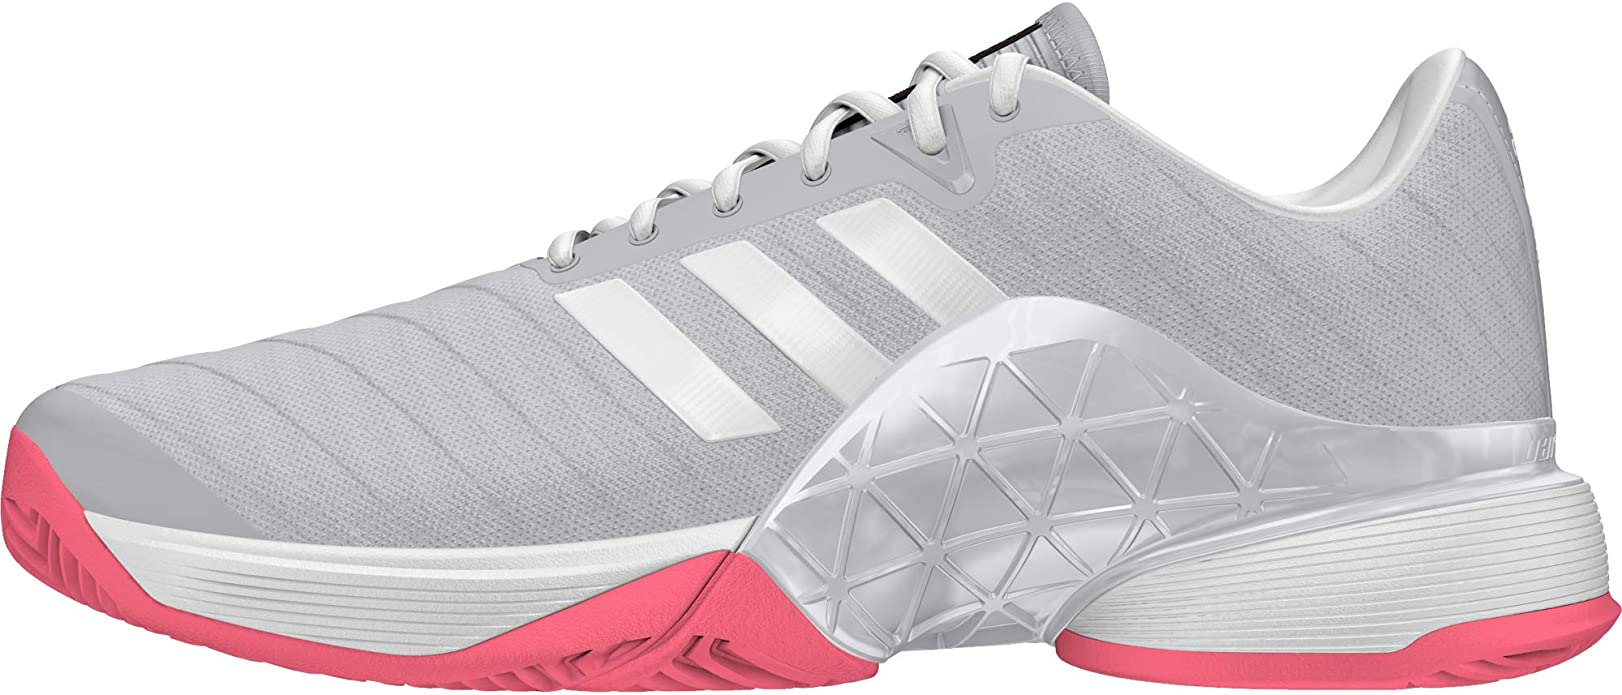 adidas Barricade 2018 W, Chaussures de Tennis Femme: Amazon